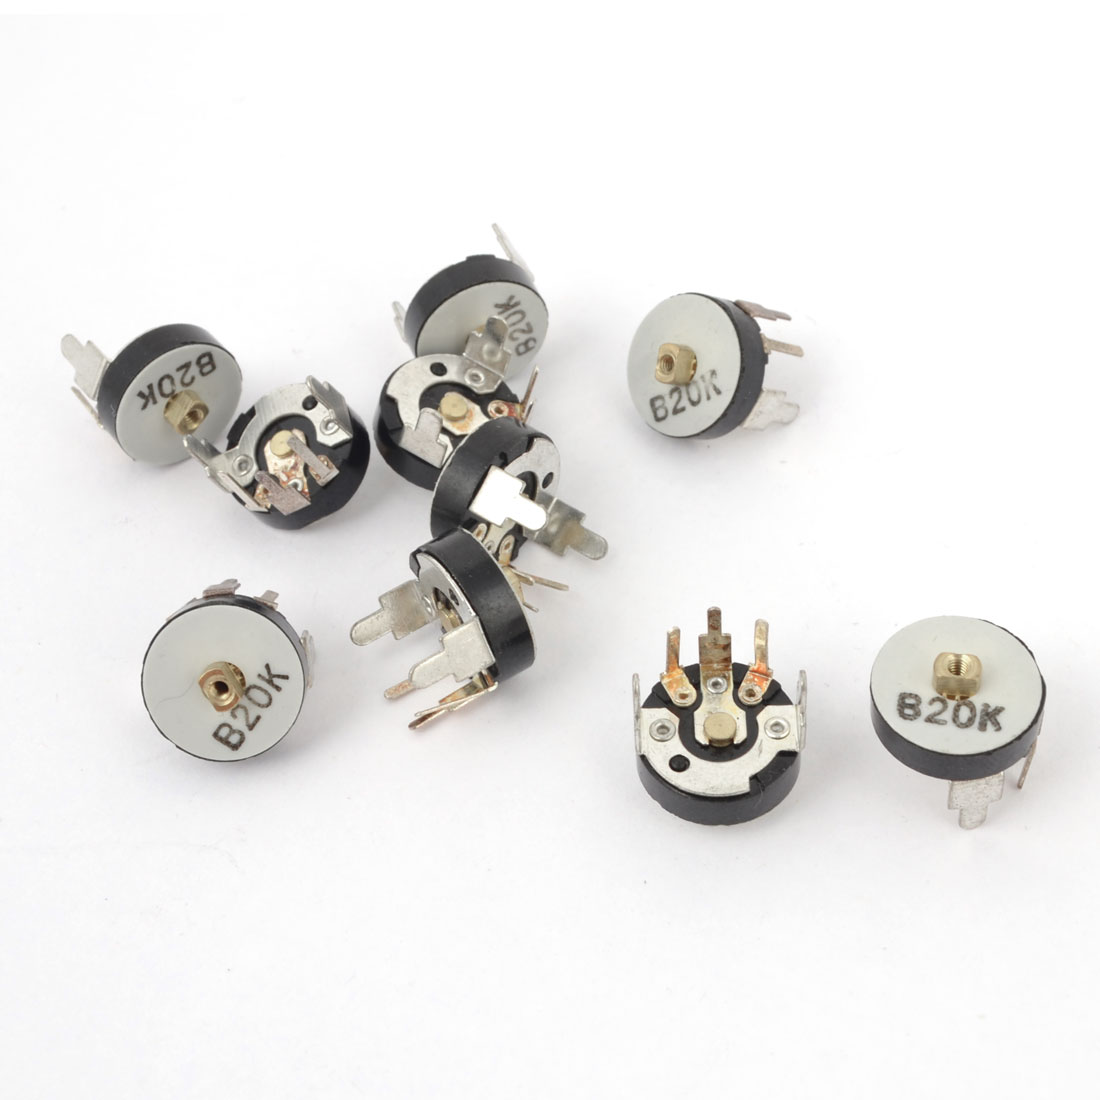 10 Pieces 12.5mm Dia 3 Terminal Adjustable Potentiometer 20K Ohm